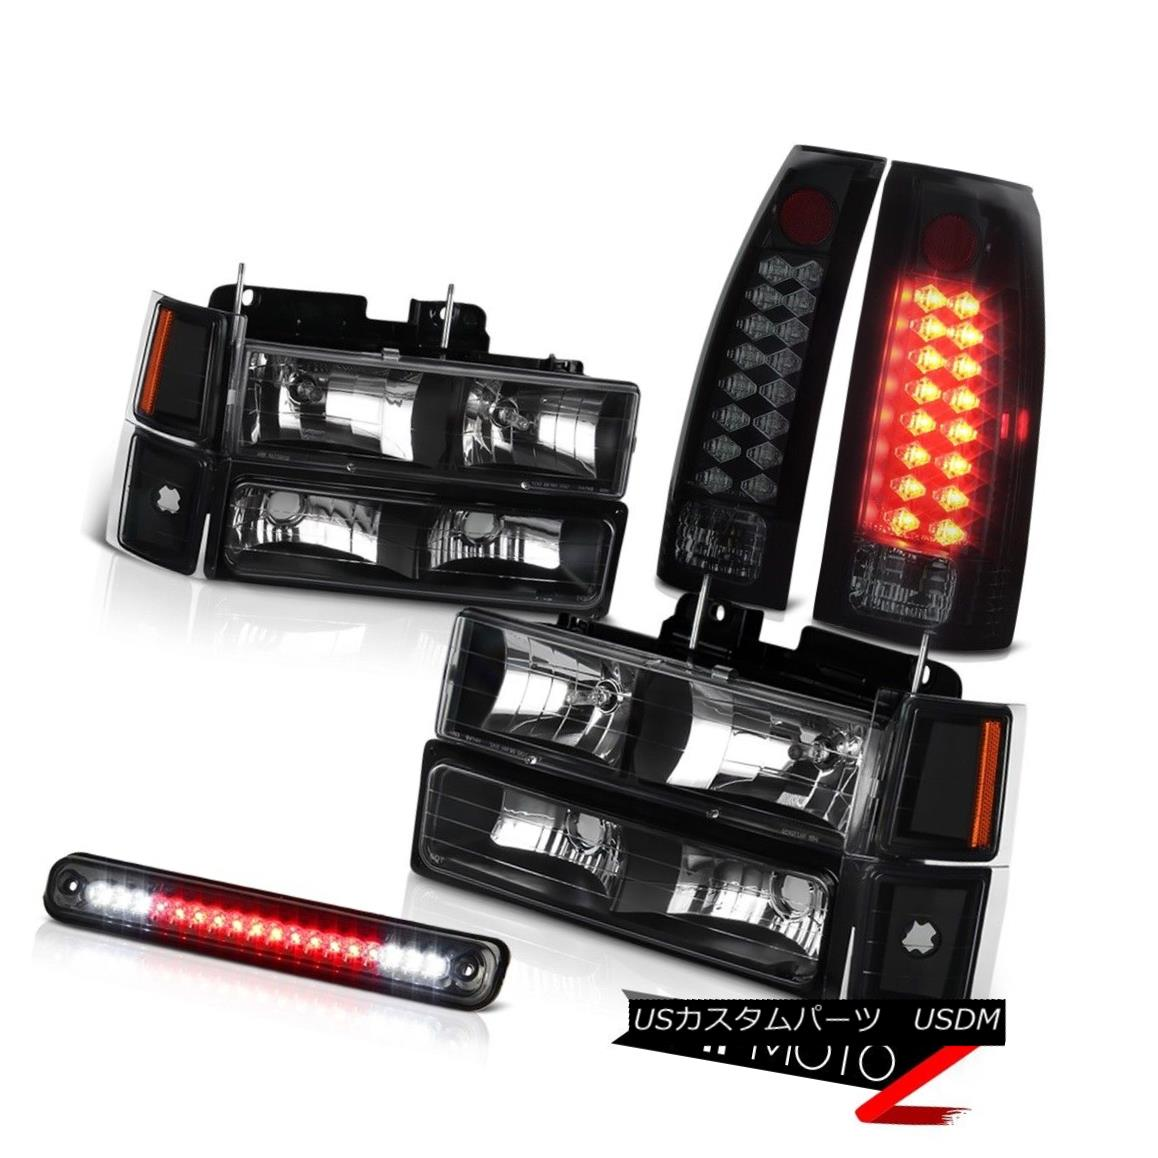 ヘッドライト 1994 1995 1996 1997 1998 Silverado 1500 2500 Smoke LED Tail Light 3RD Headlights 1994 1995 1995 1996 1997 1998 Silverado 1500 2500スモークLEDテールライト3RDヘッドライト